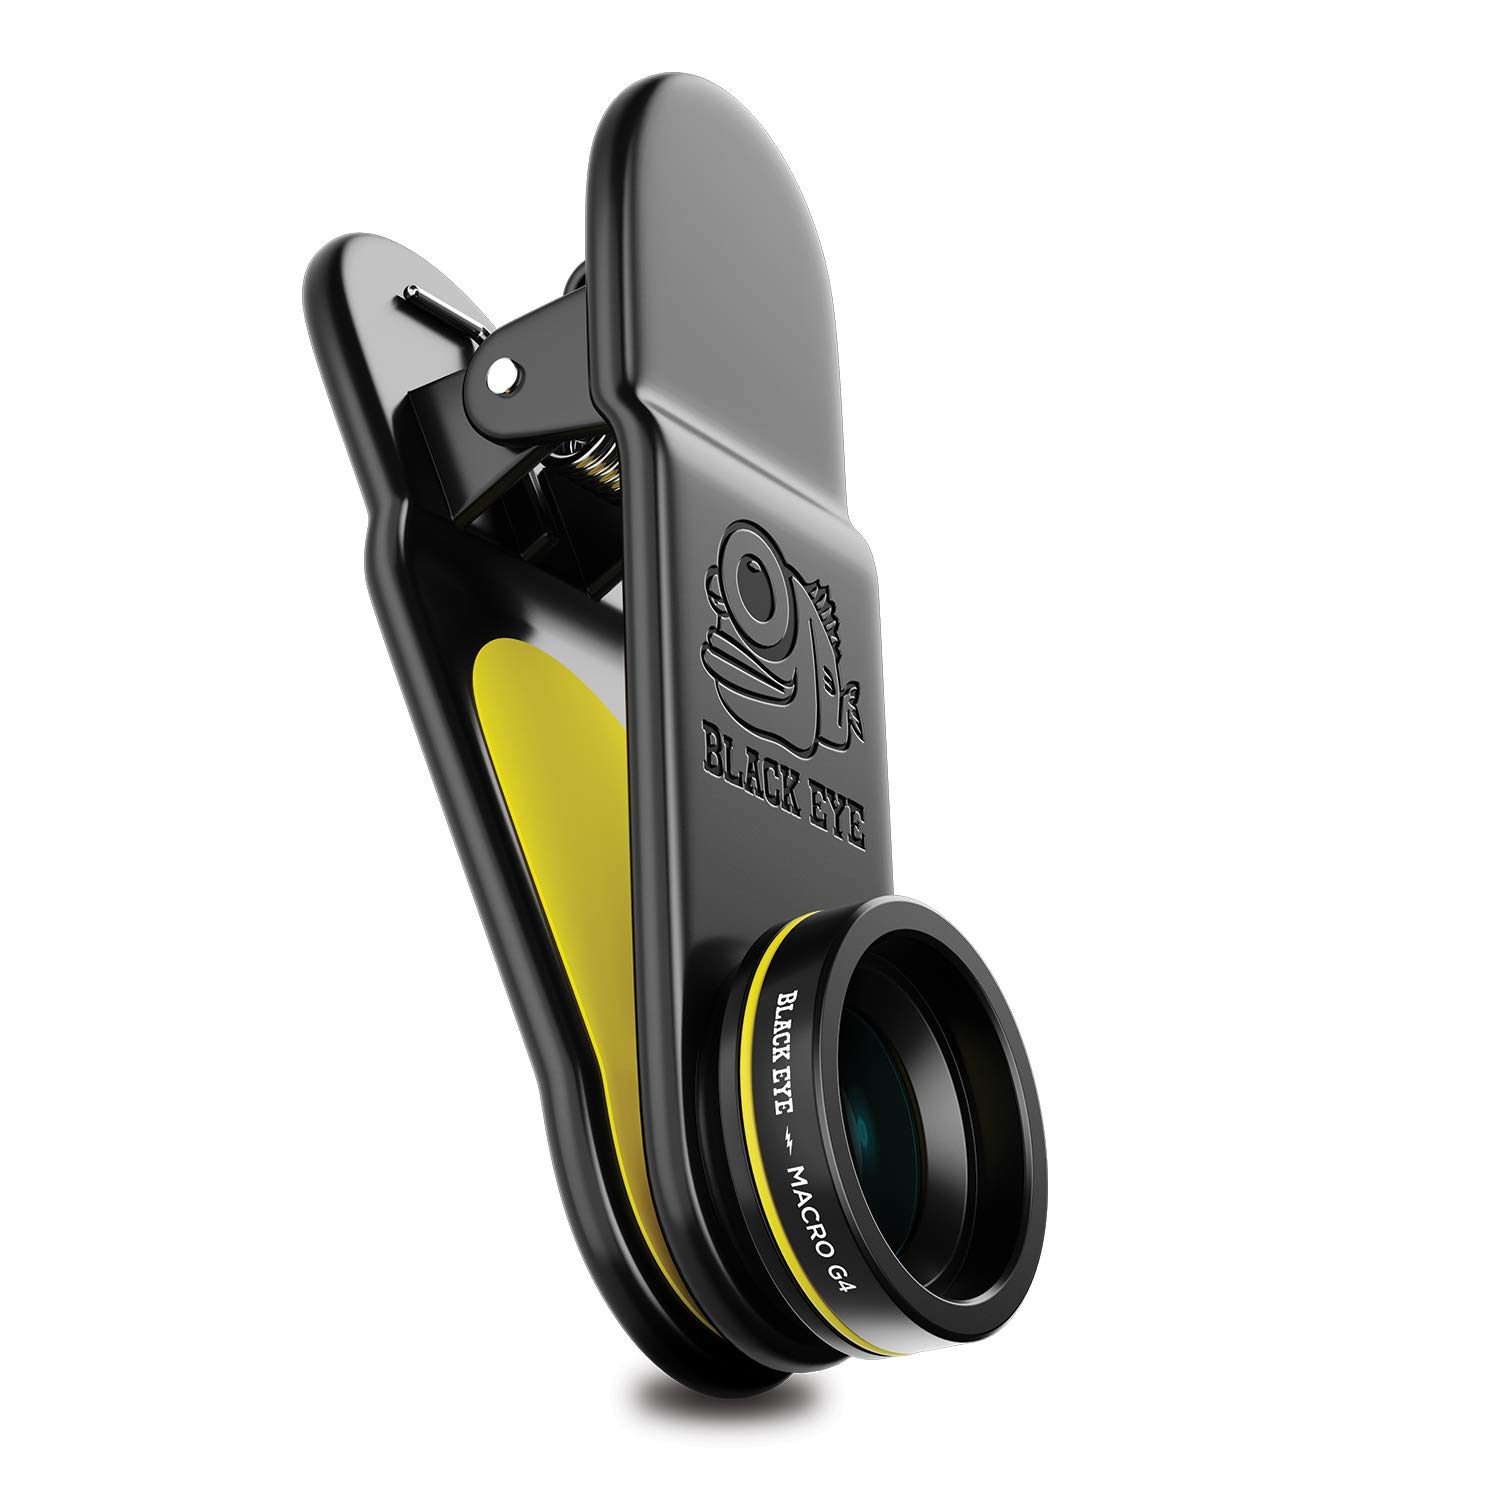 Phone Lenses by Black Eye || Macro G4 Clip-on Lens Compatible with iPhone, iPad, Samsung Galaxy, and All Camera Phone Models